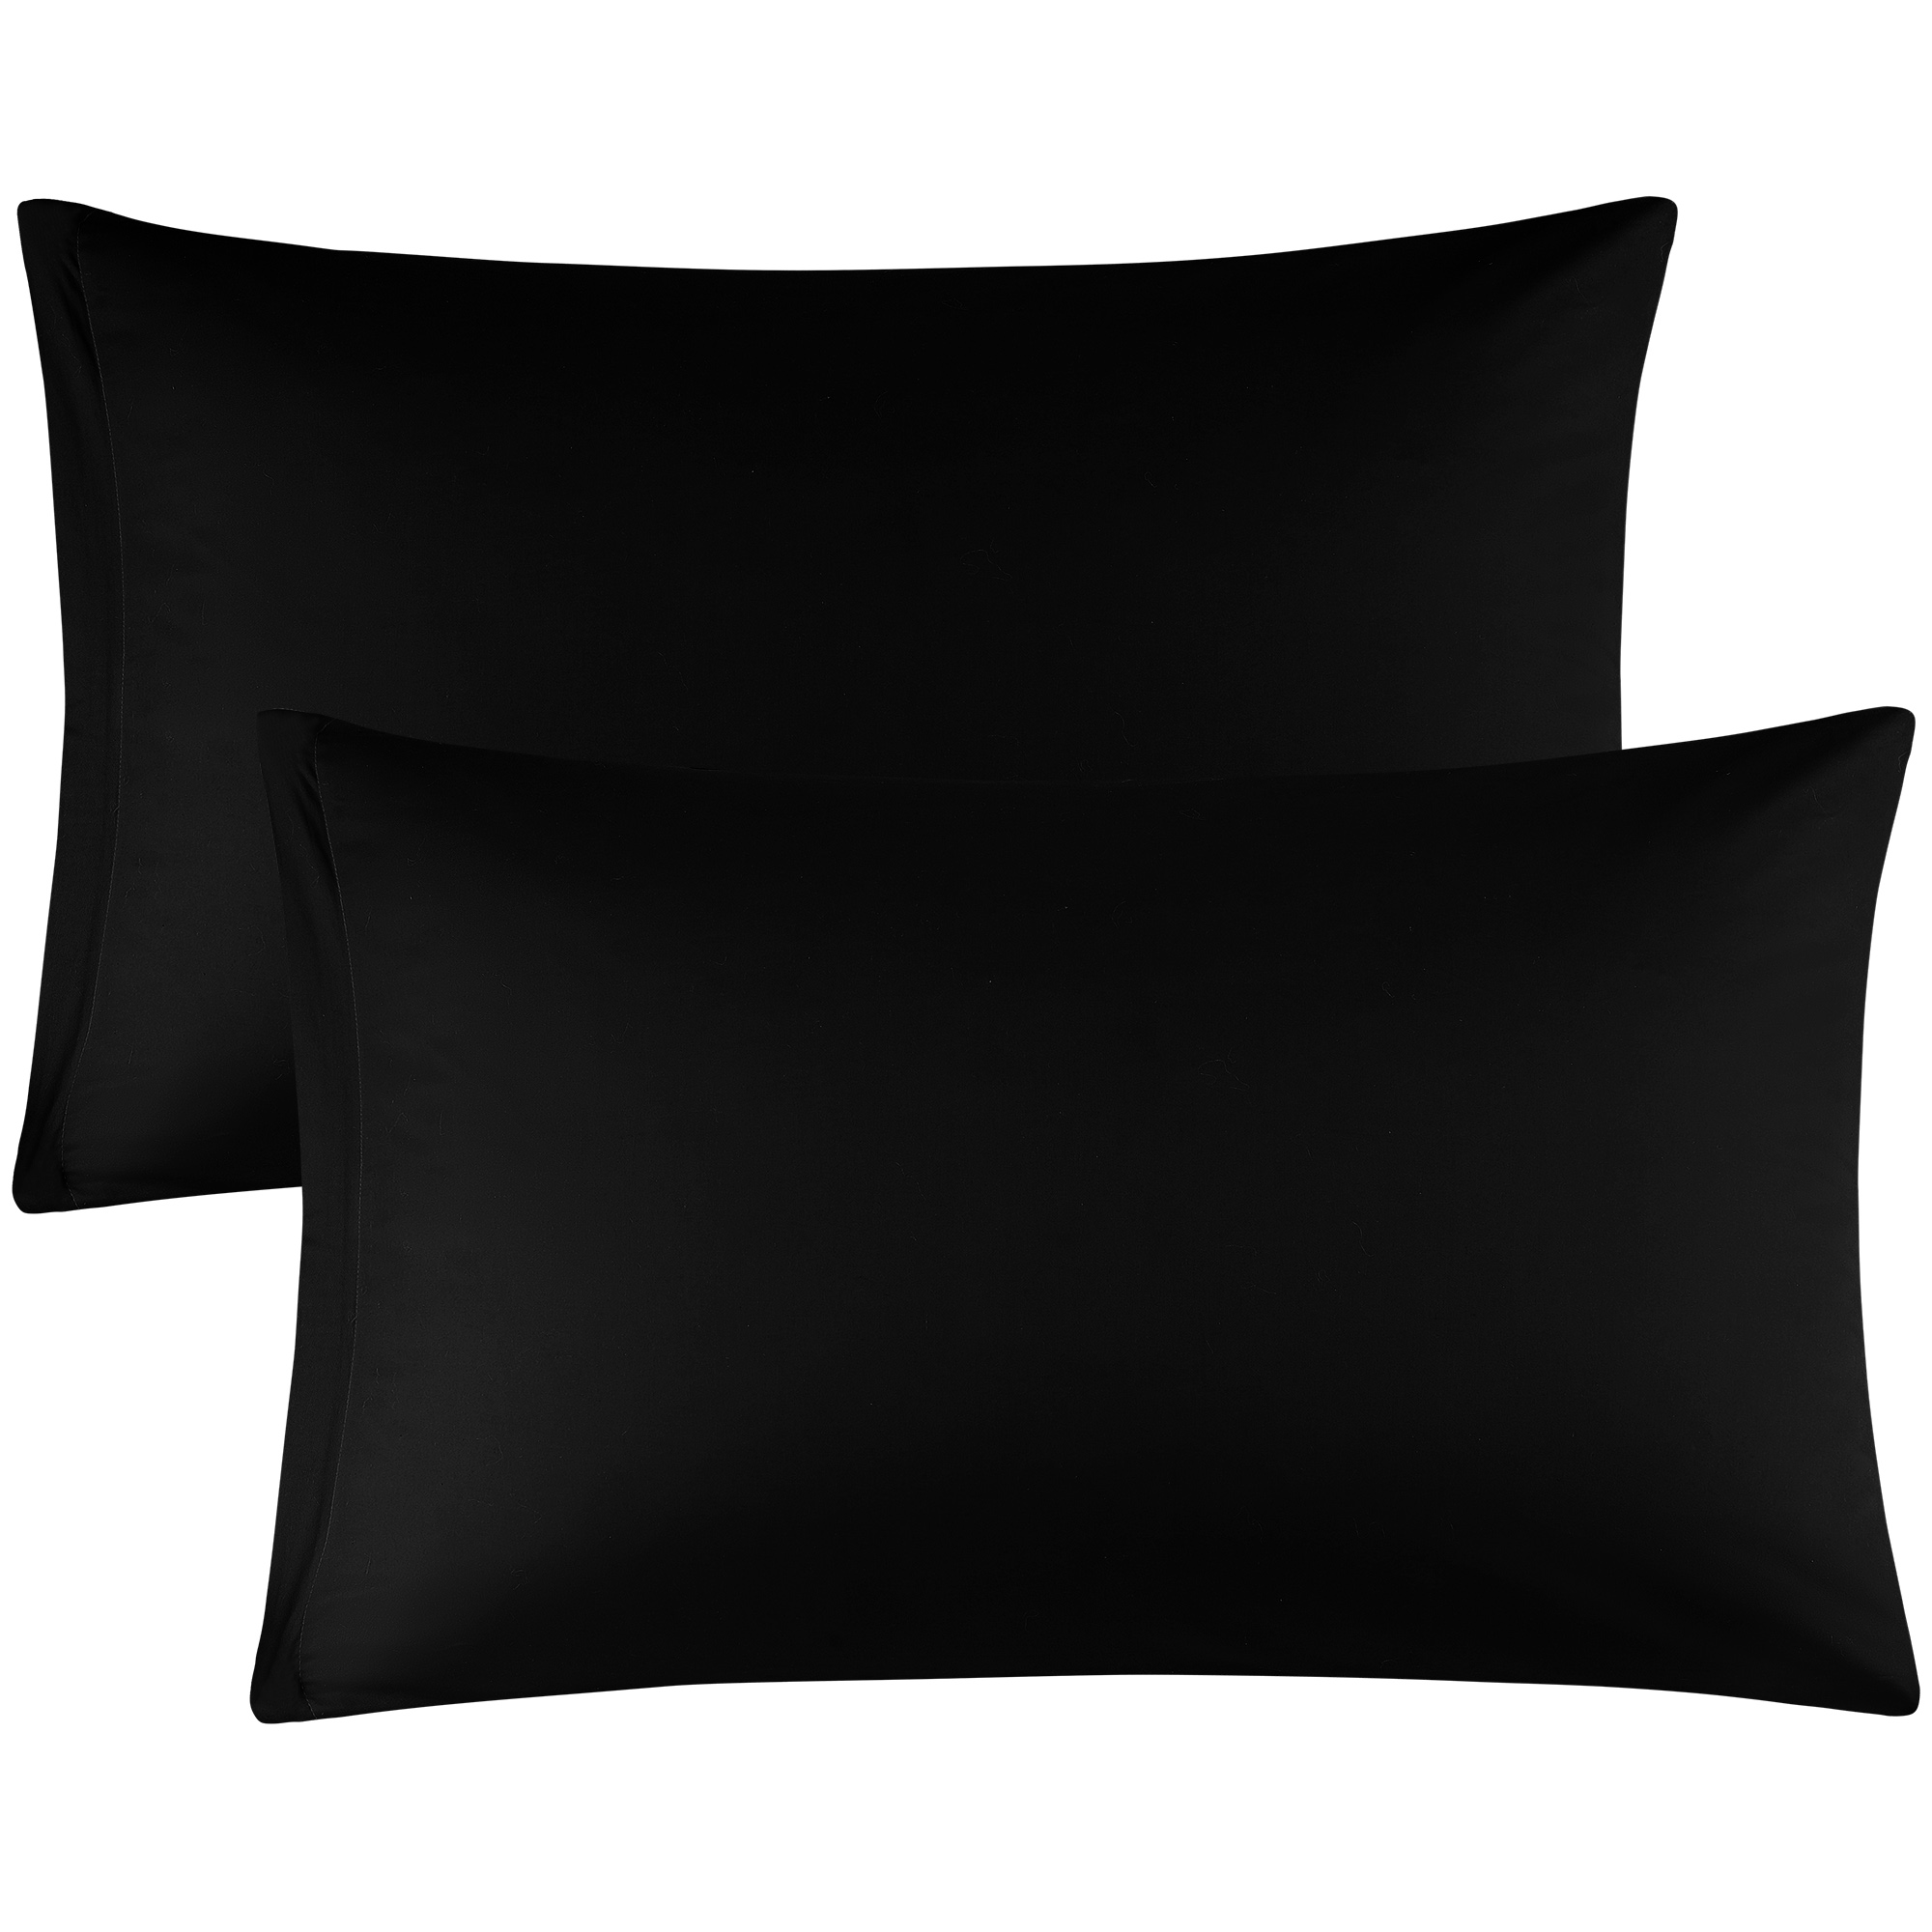 Zippered Cases Pillowcases Covers Egyptian Cotton 2-Pack (20 x 30 Inch, Black)